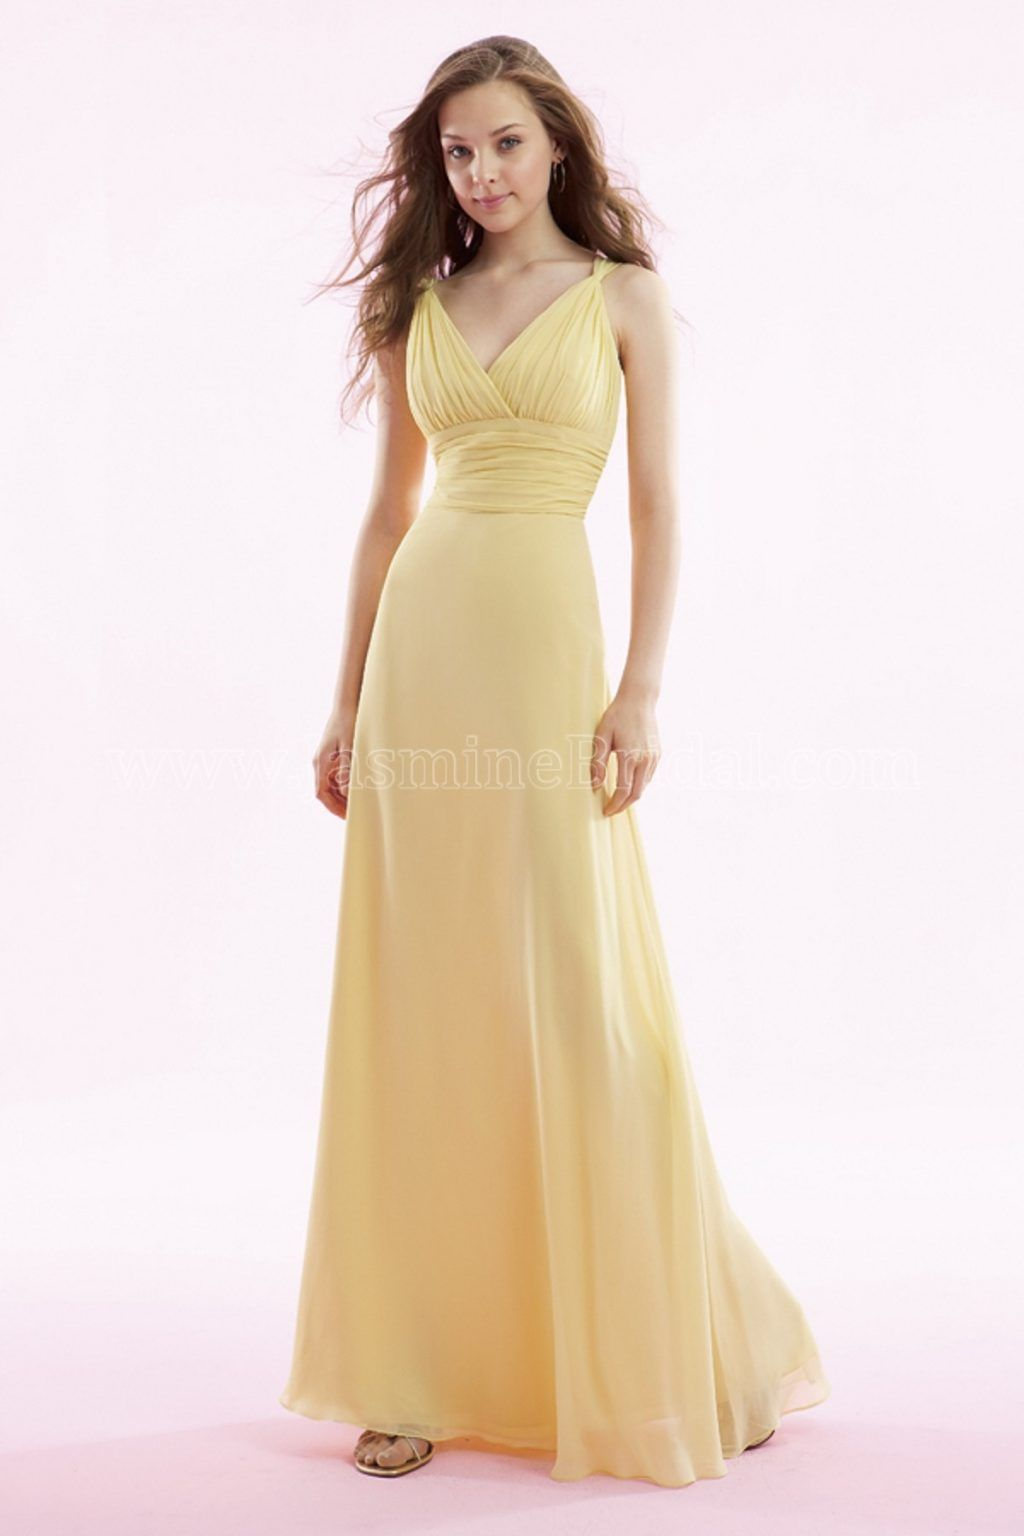 B1050 a gorgeous fitted yet floaty bridesmaid dress beautiful b1050 a gorgeous fitted yet floaty bridesmaid dress beautiful for summer weddings ombrellifo Gallery